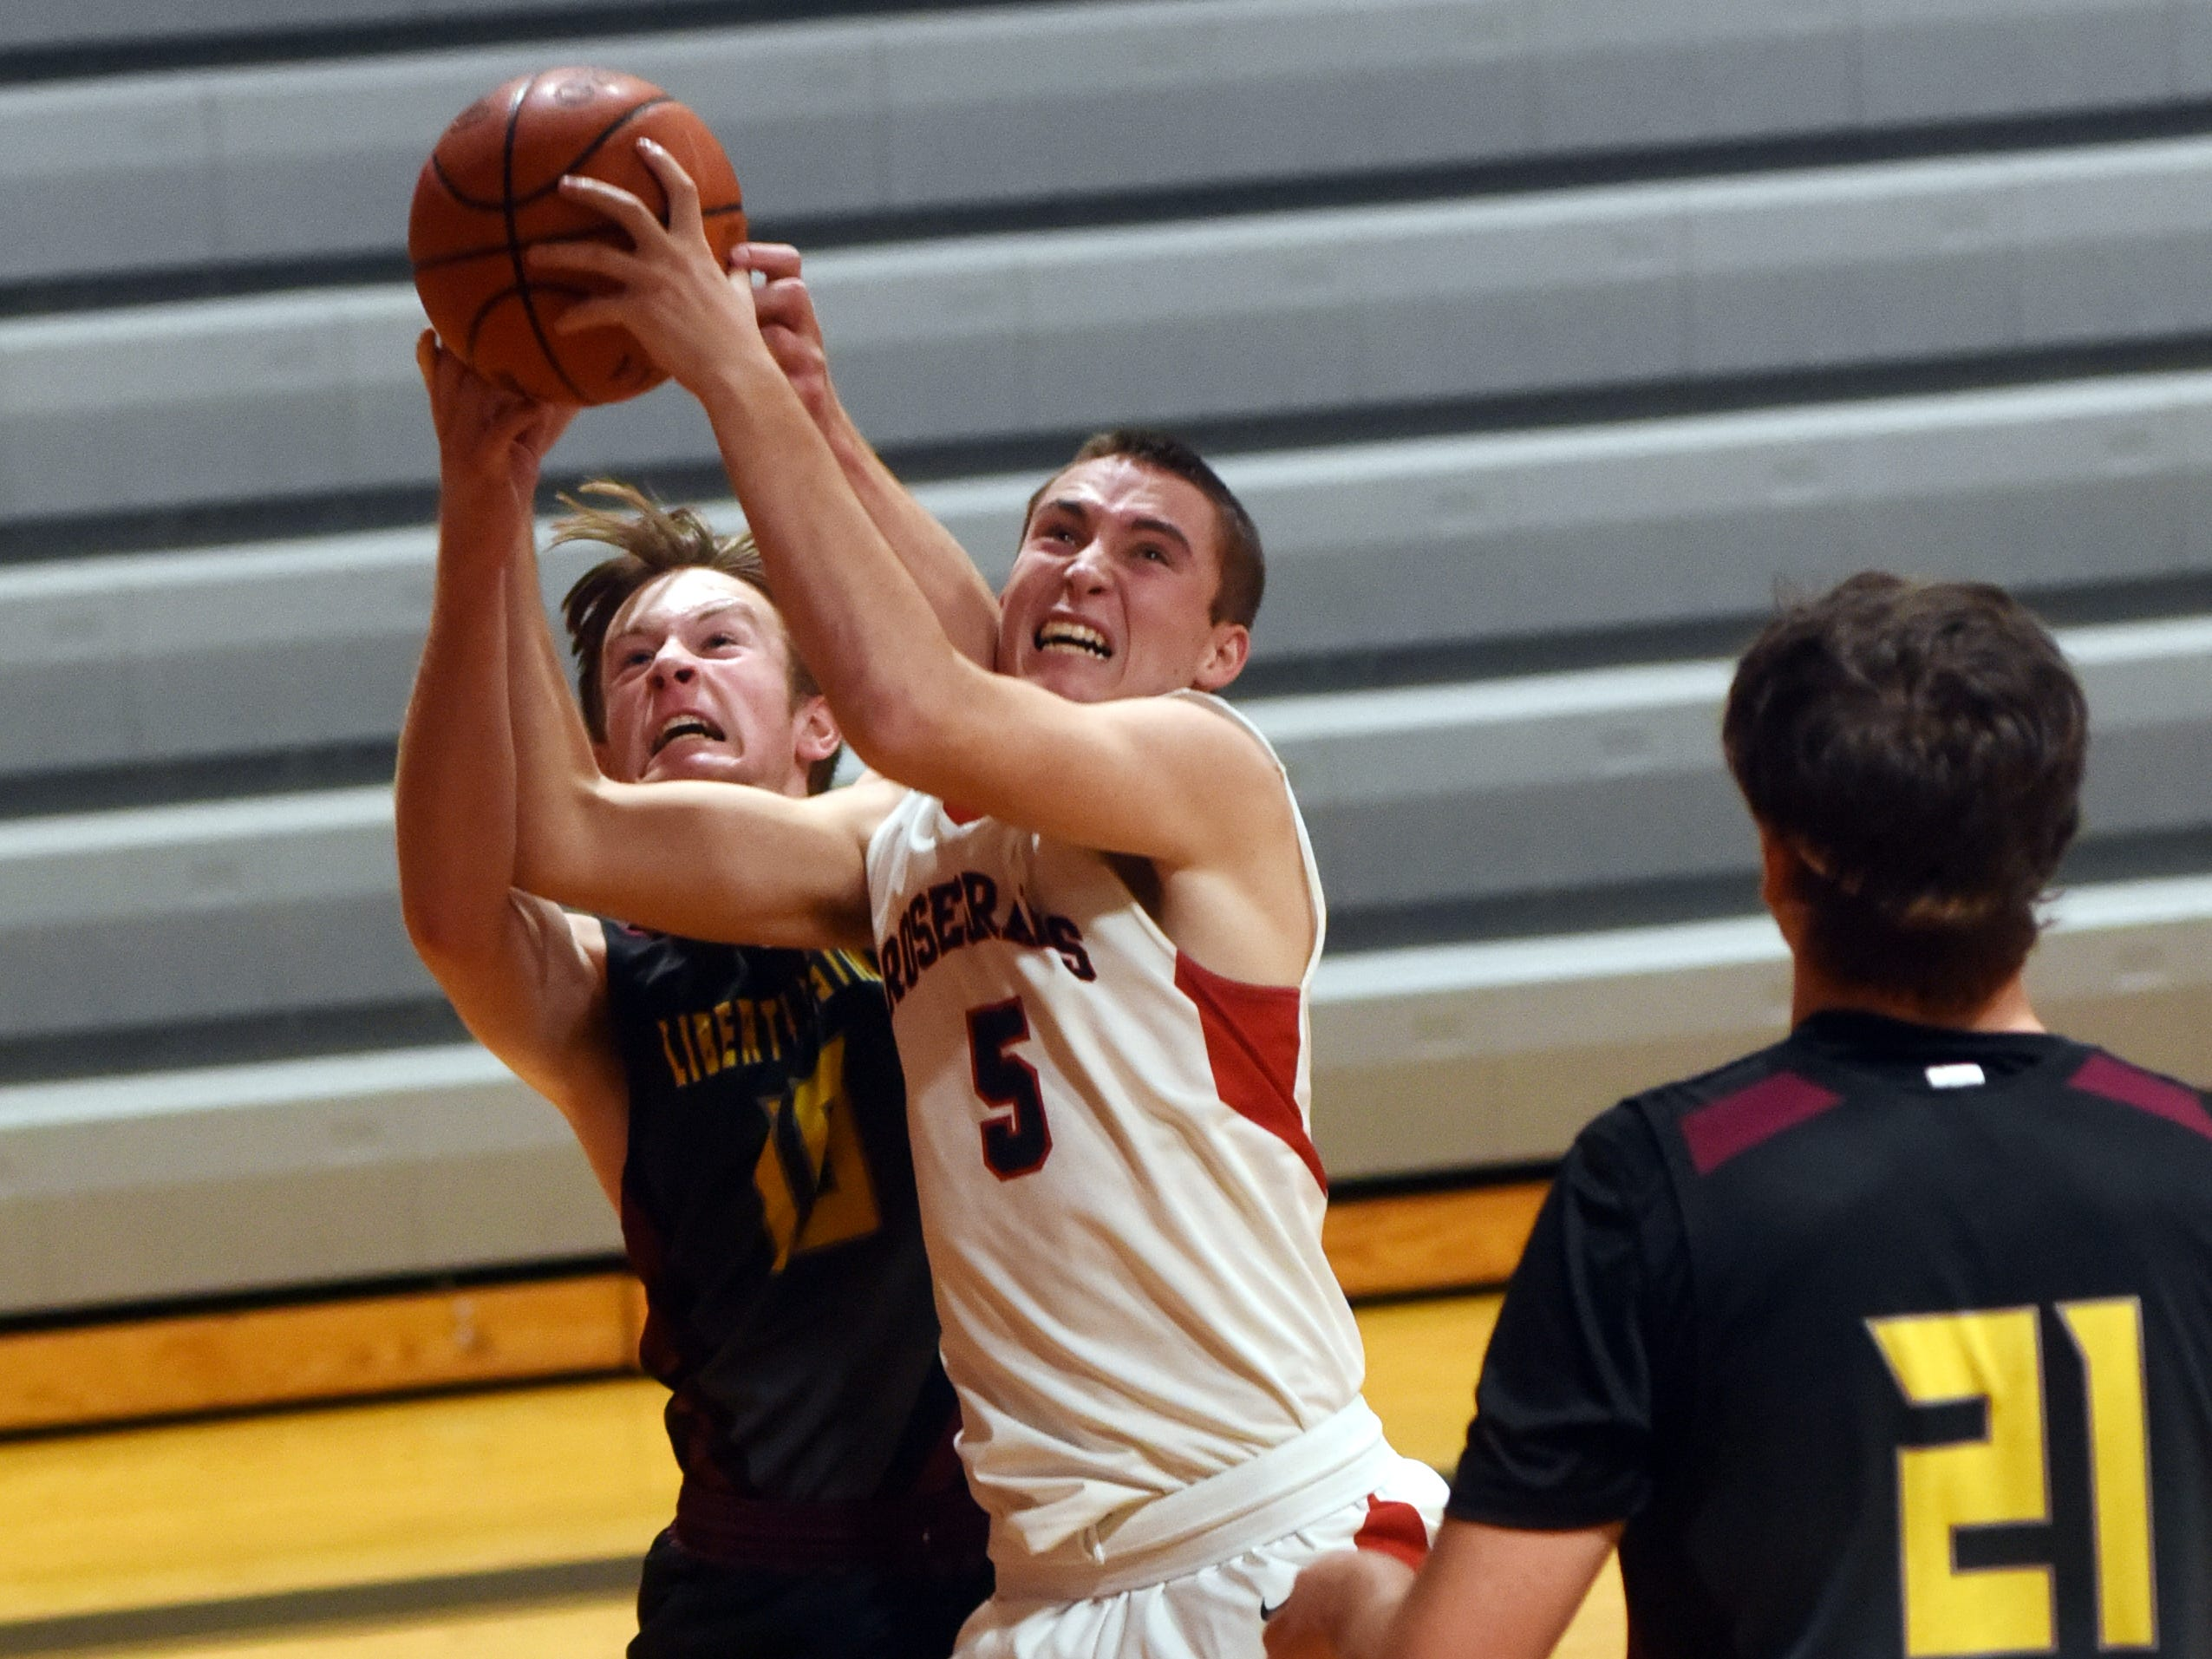 Marcus Browning fights for a rebound during  Rosecrans' 92-12 win against Liberty Christian on Monday night at Rogge Gymnasium.